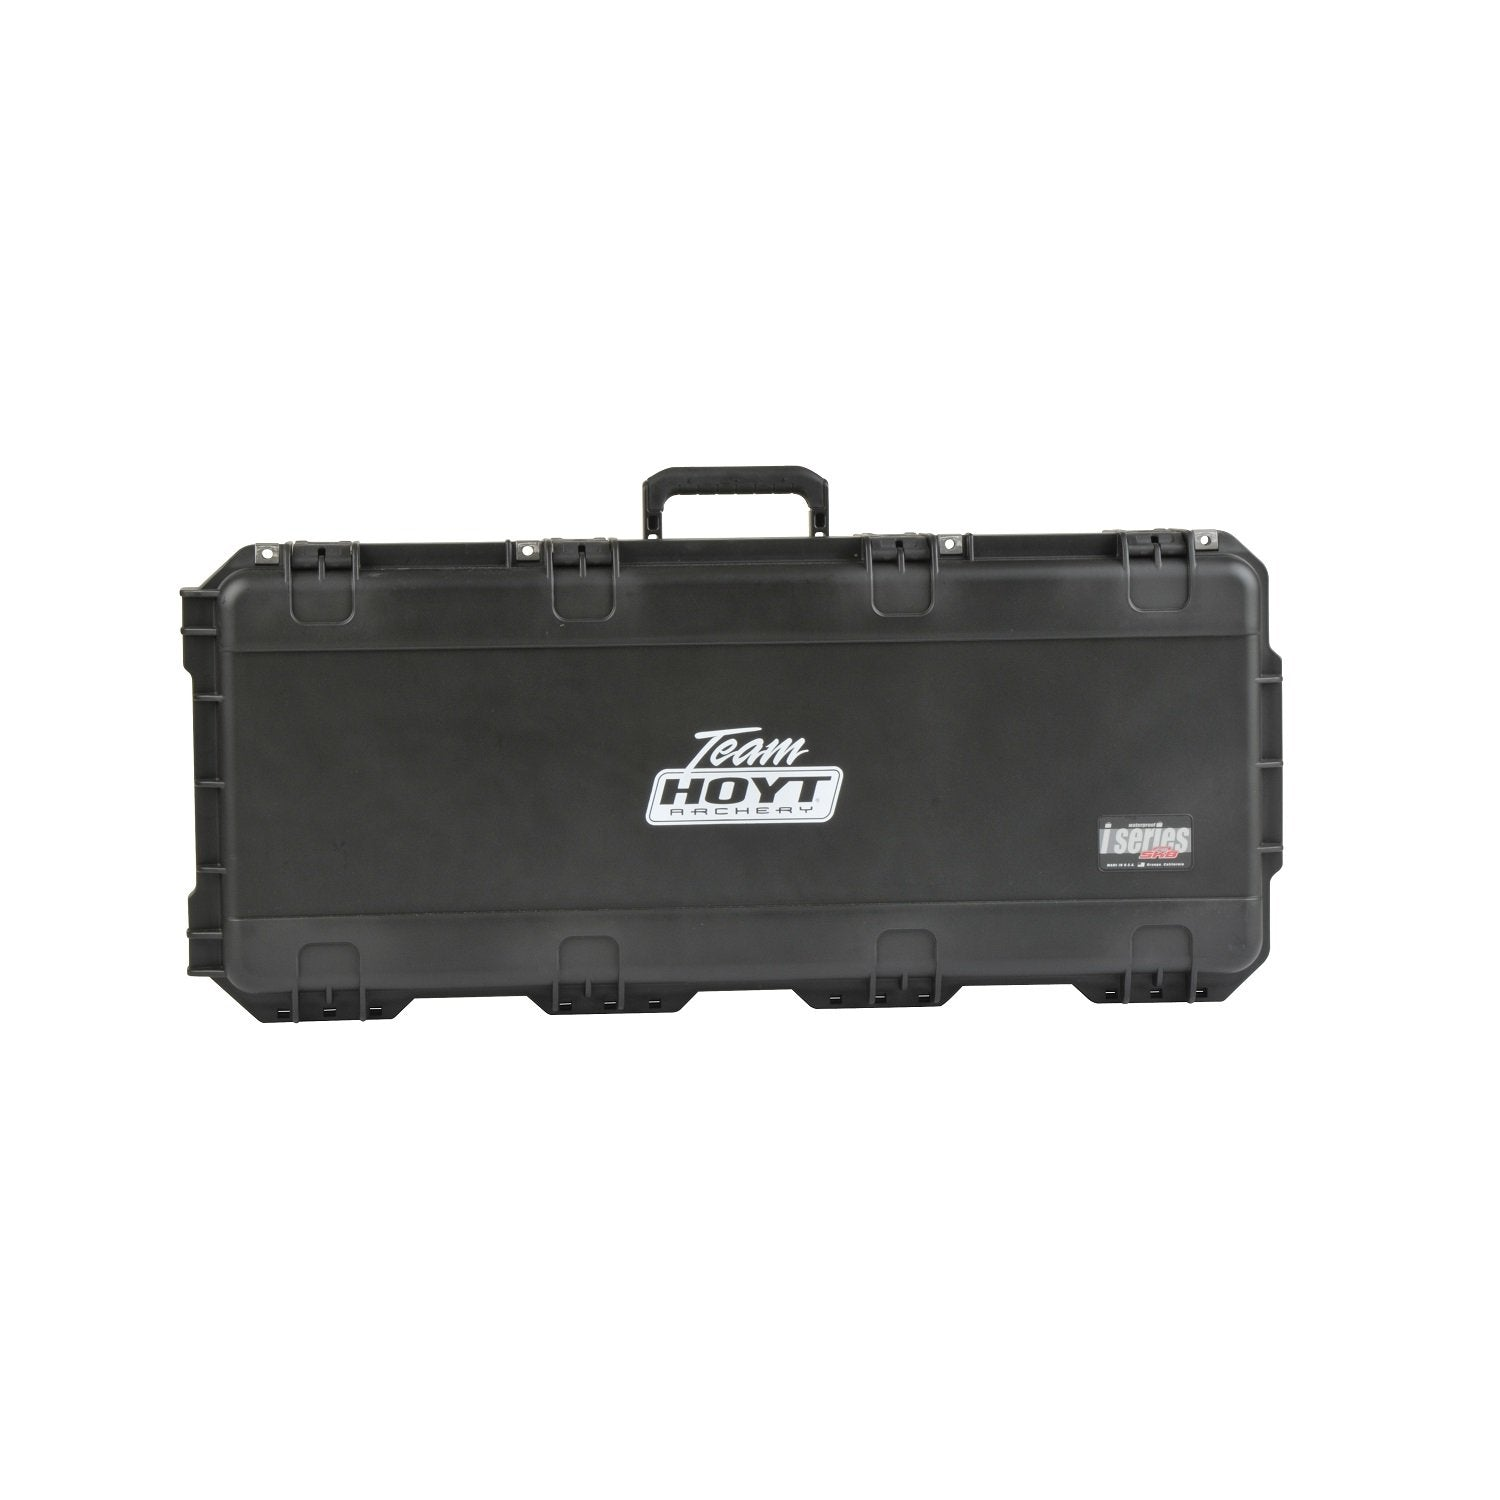 SKB Hoyt 3614 iSeries Parallel Limb Bow Case-Small